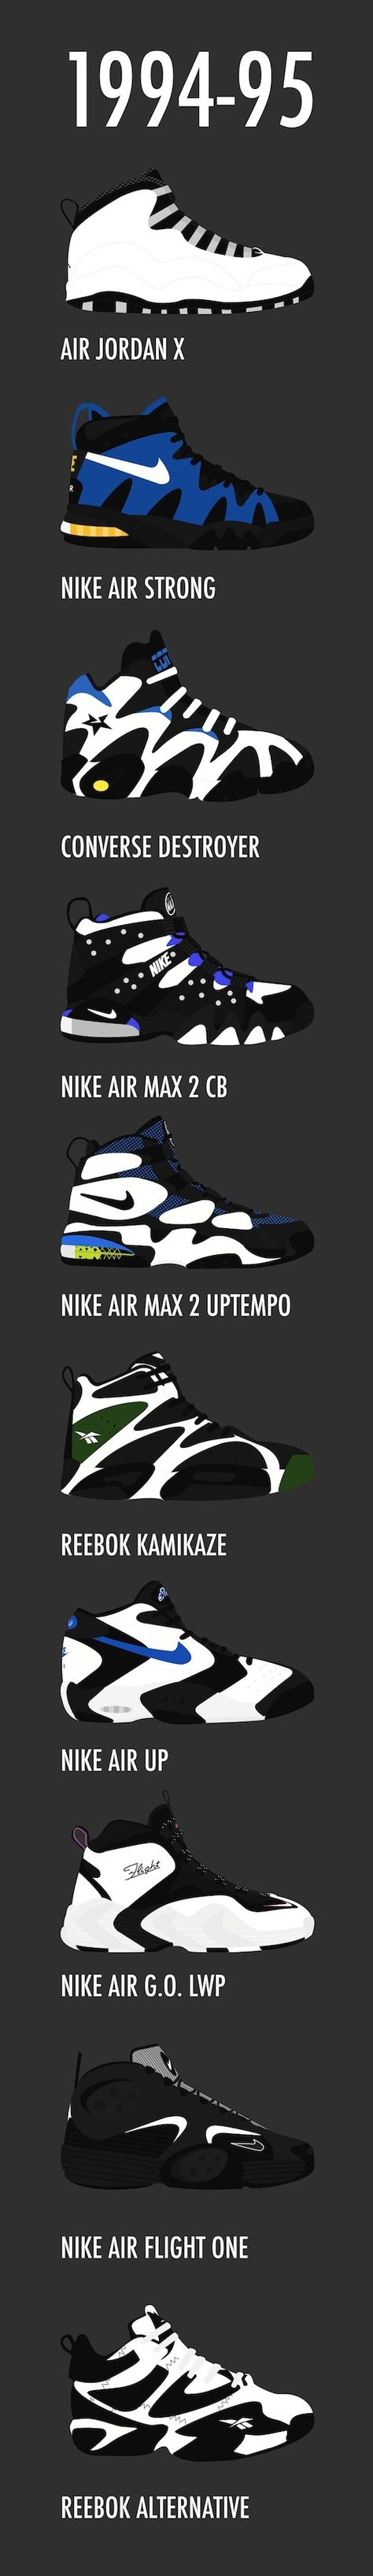 108 best basketball shoes images on Pinterest | Basketball shoes, Shoes and  Reebok